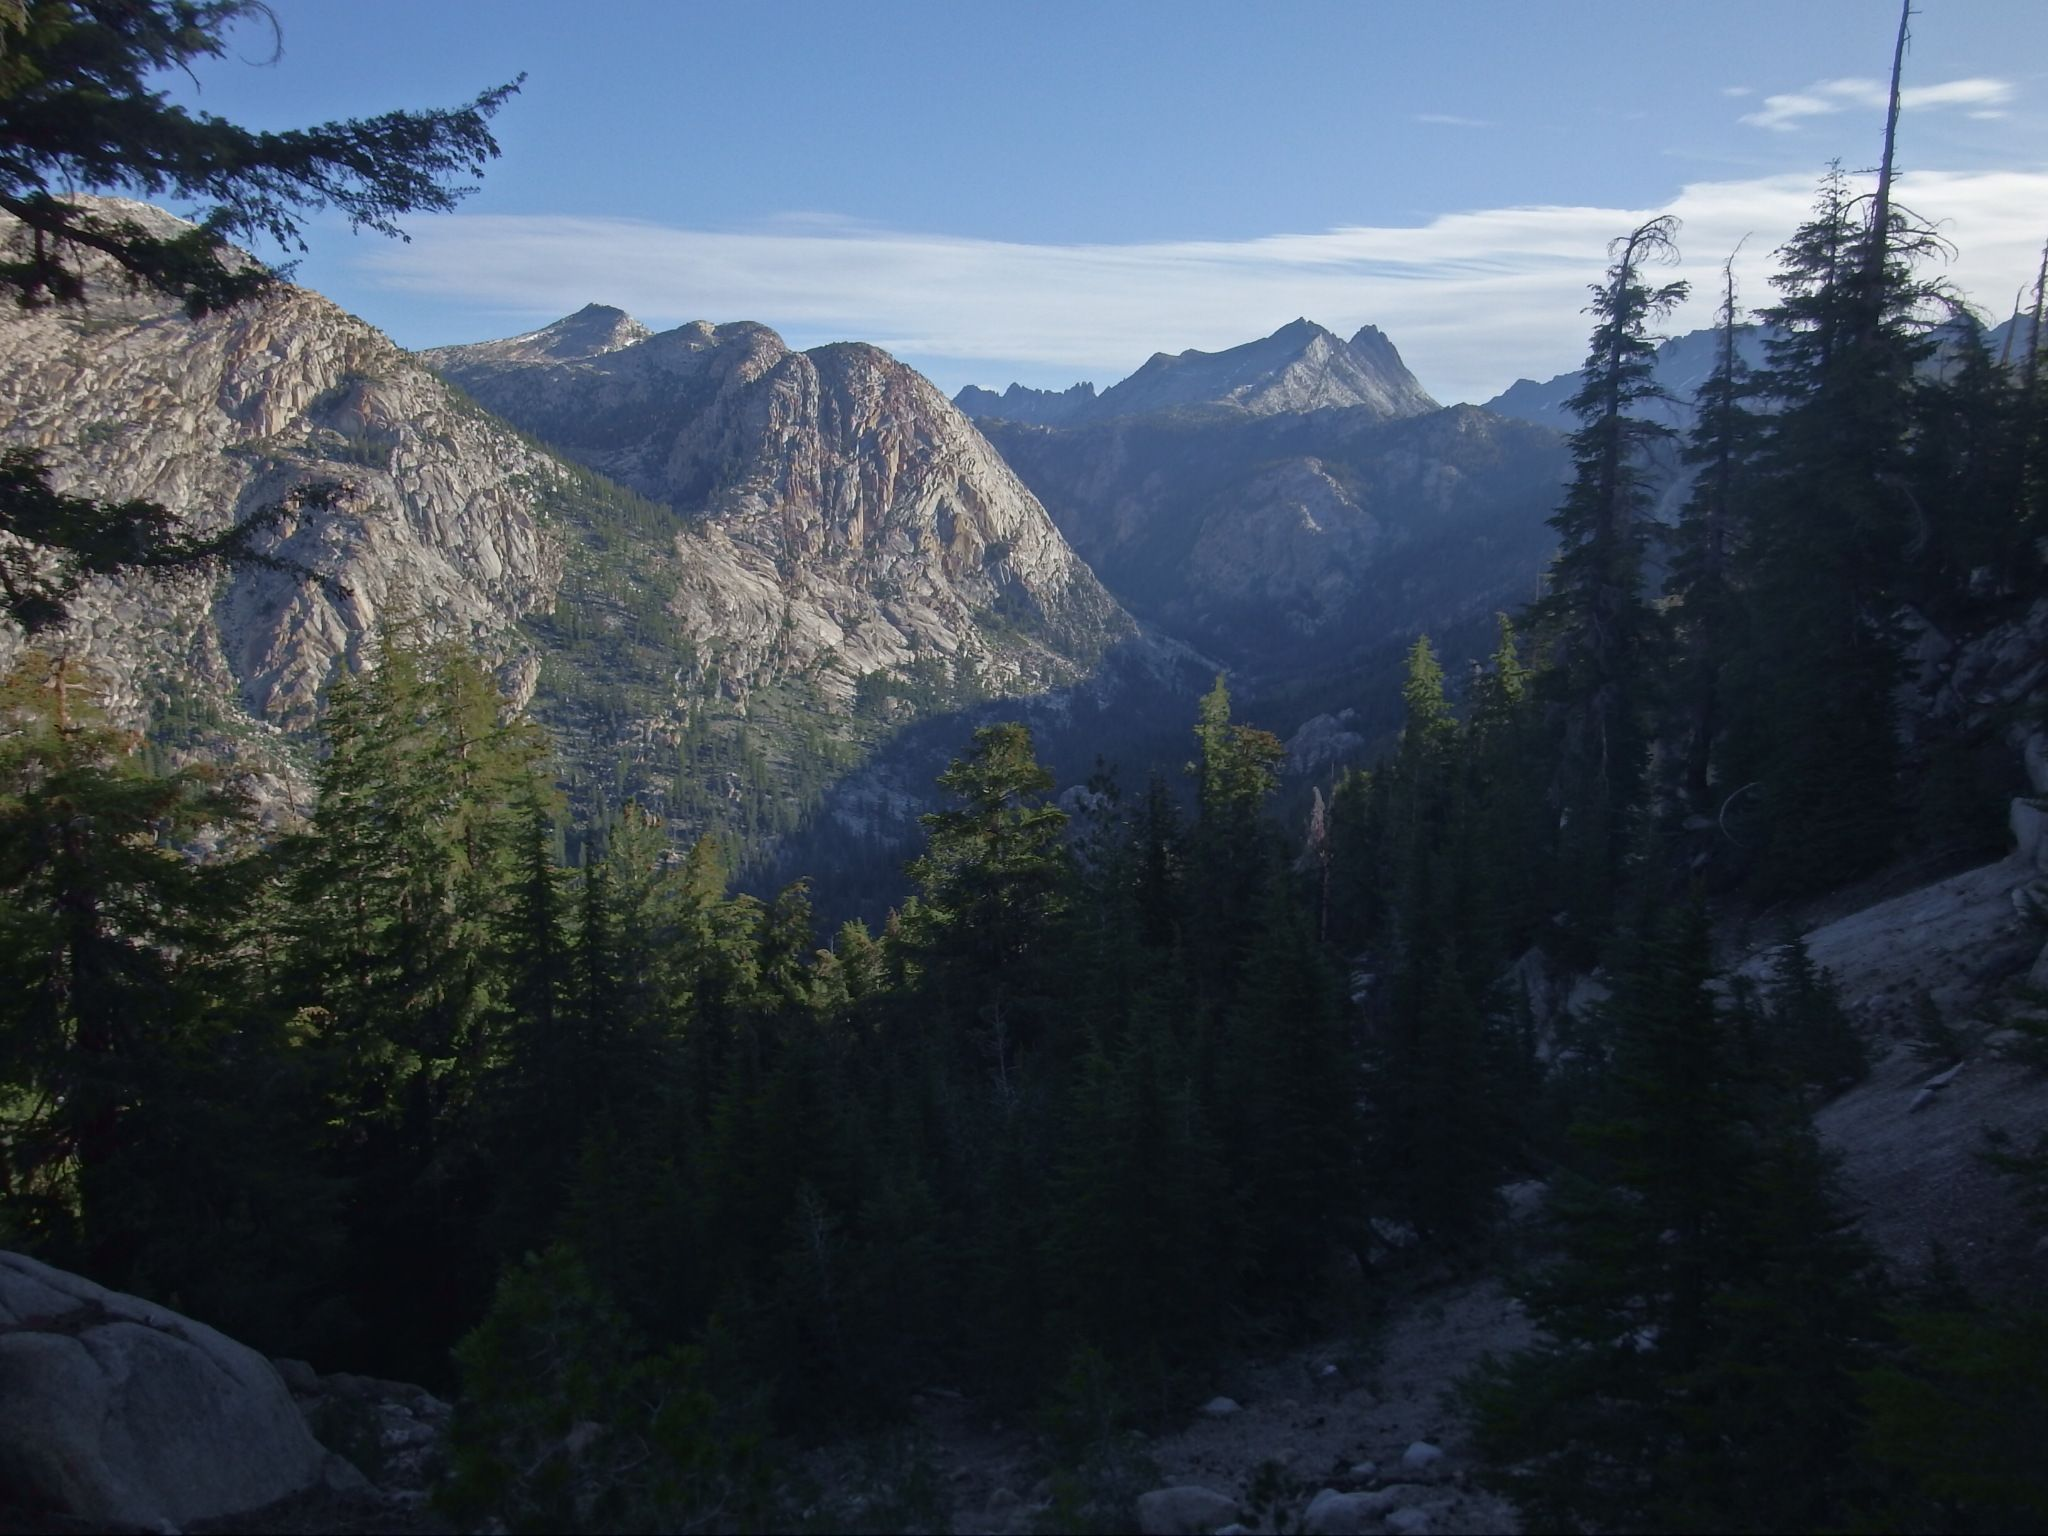 Hiking the PCT north of Tuolumne Meadows